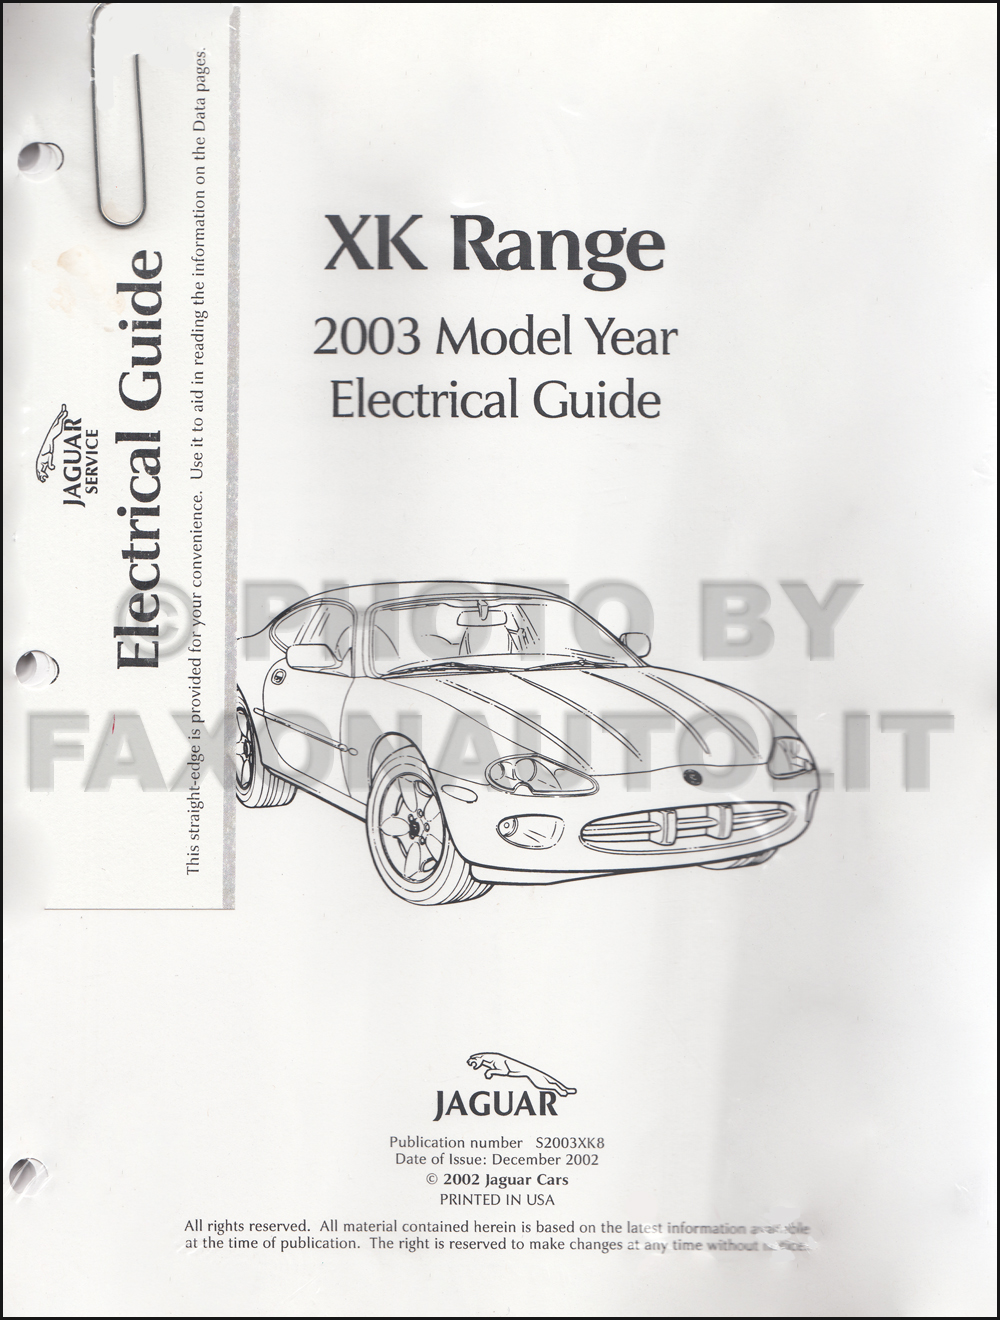 hight resolution of 2003 jaguar xk8 and xkr electrical guide wiring diagram